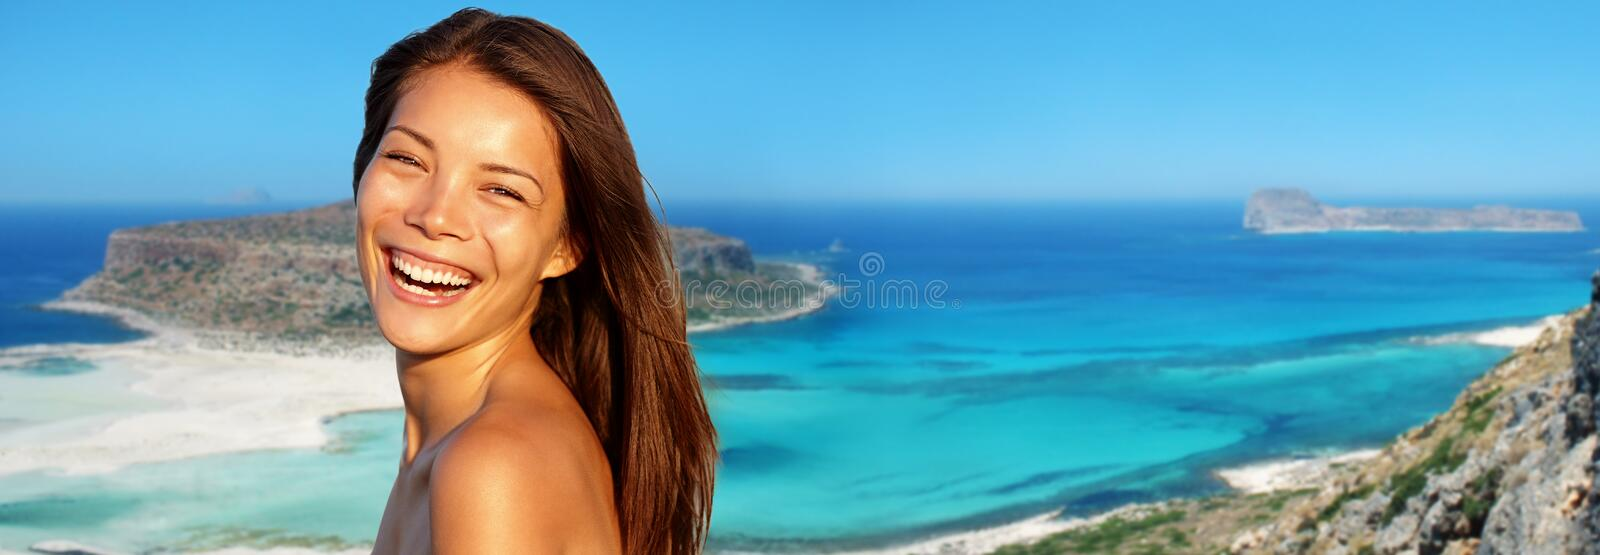 Download Travel woman banner stock photo. Image of header, holidays - 27253716